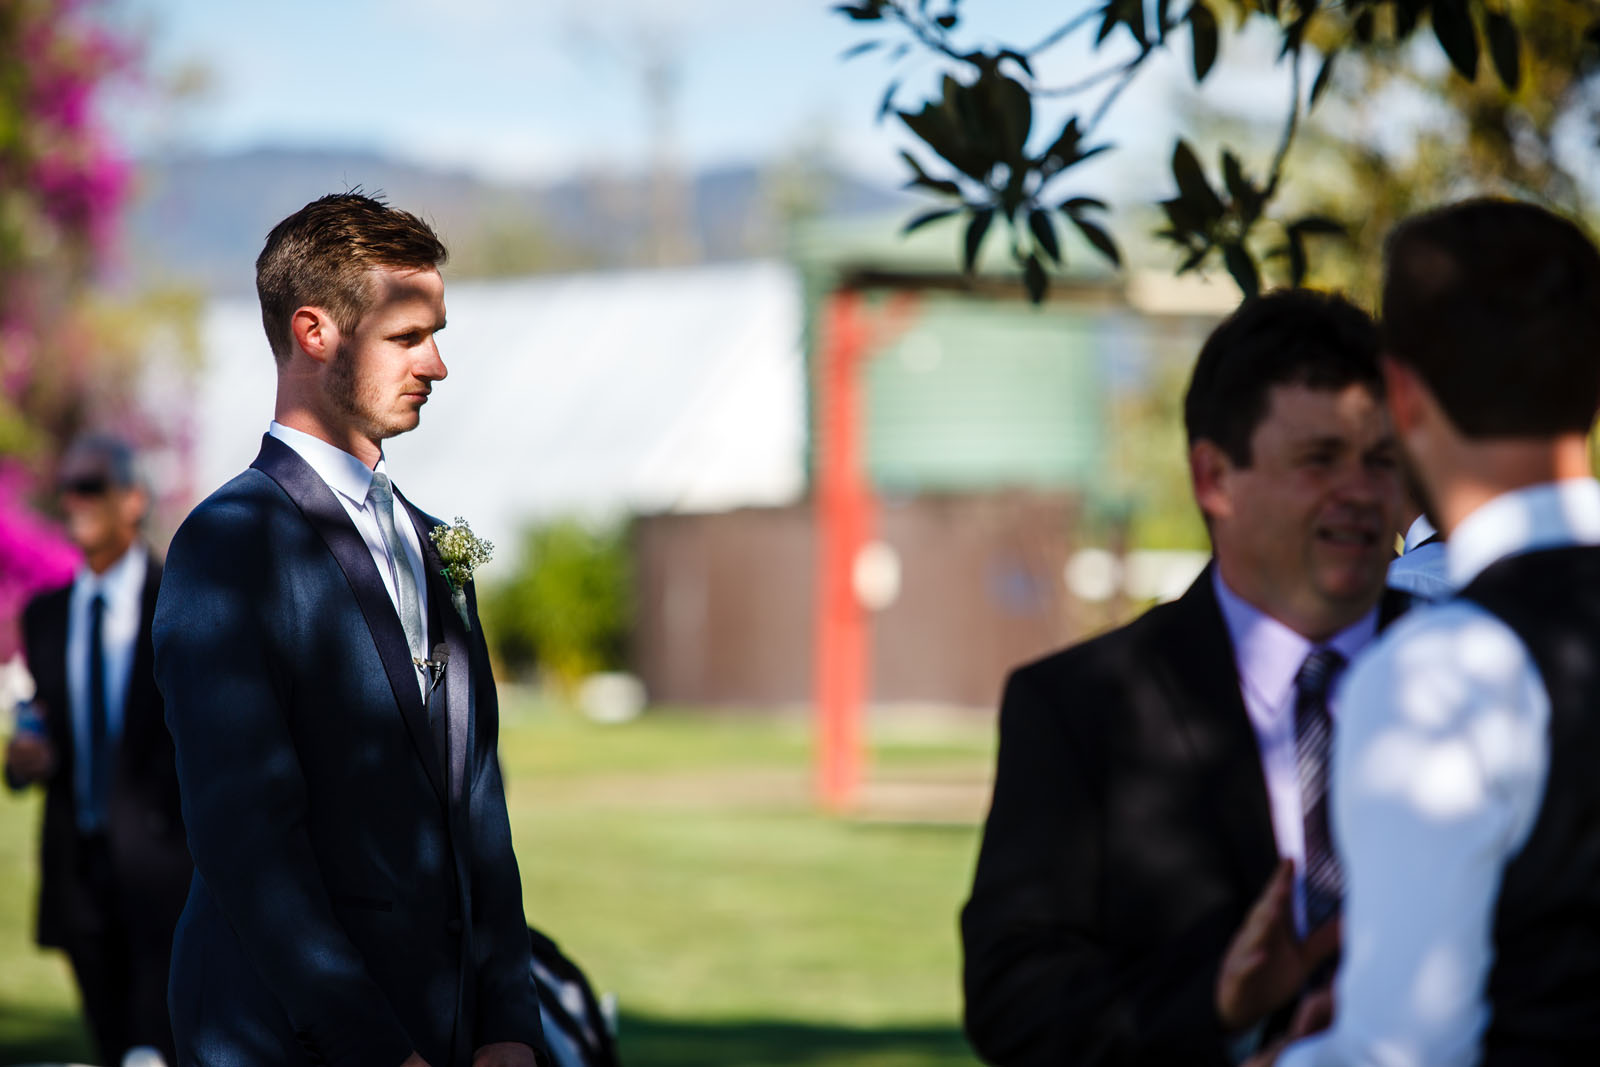 mount_tamborine_wedding_photographer_192